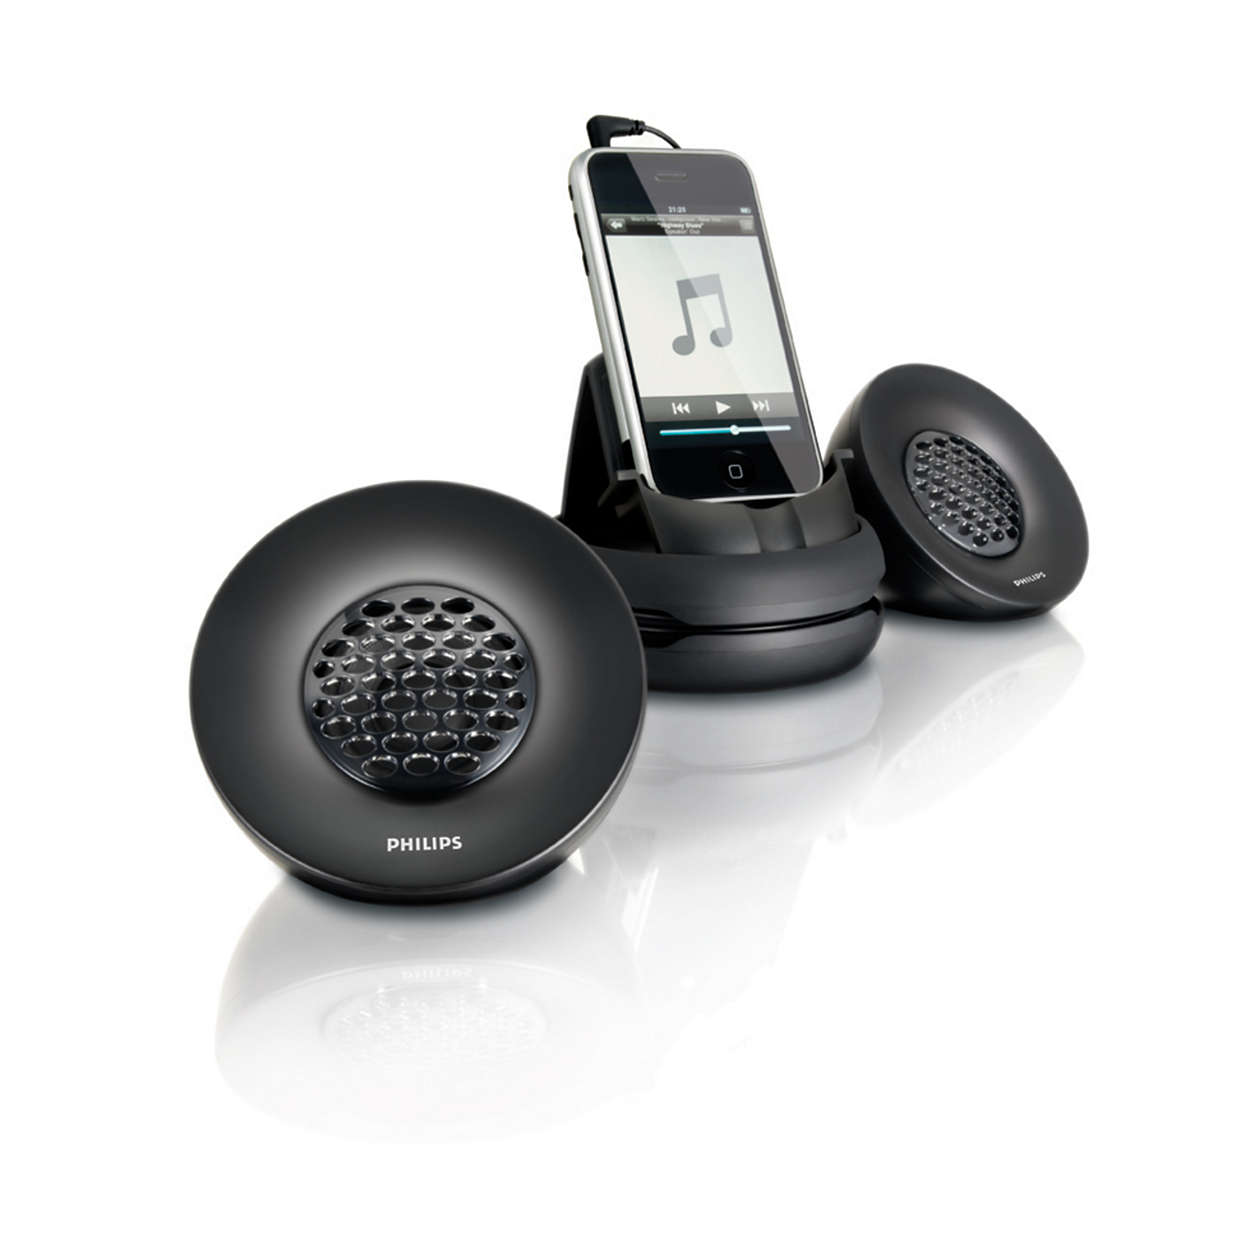 Portable Speakers for iPhone